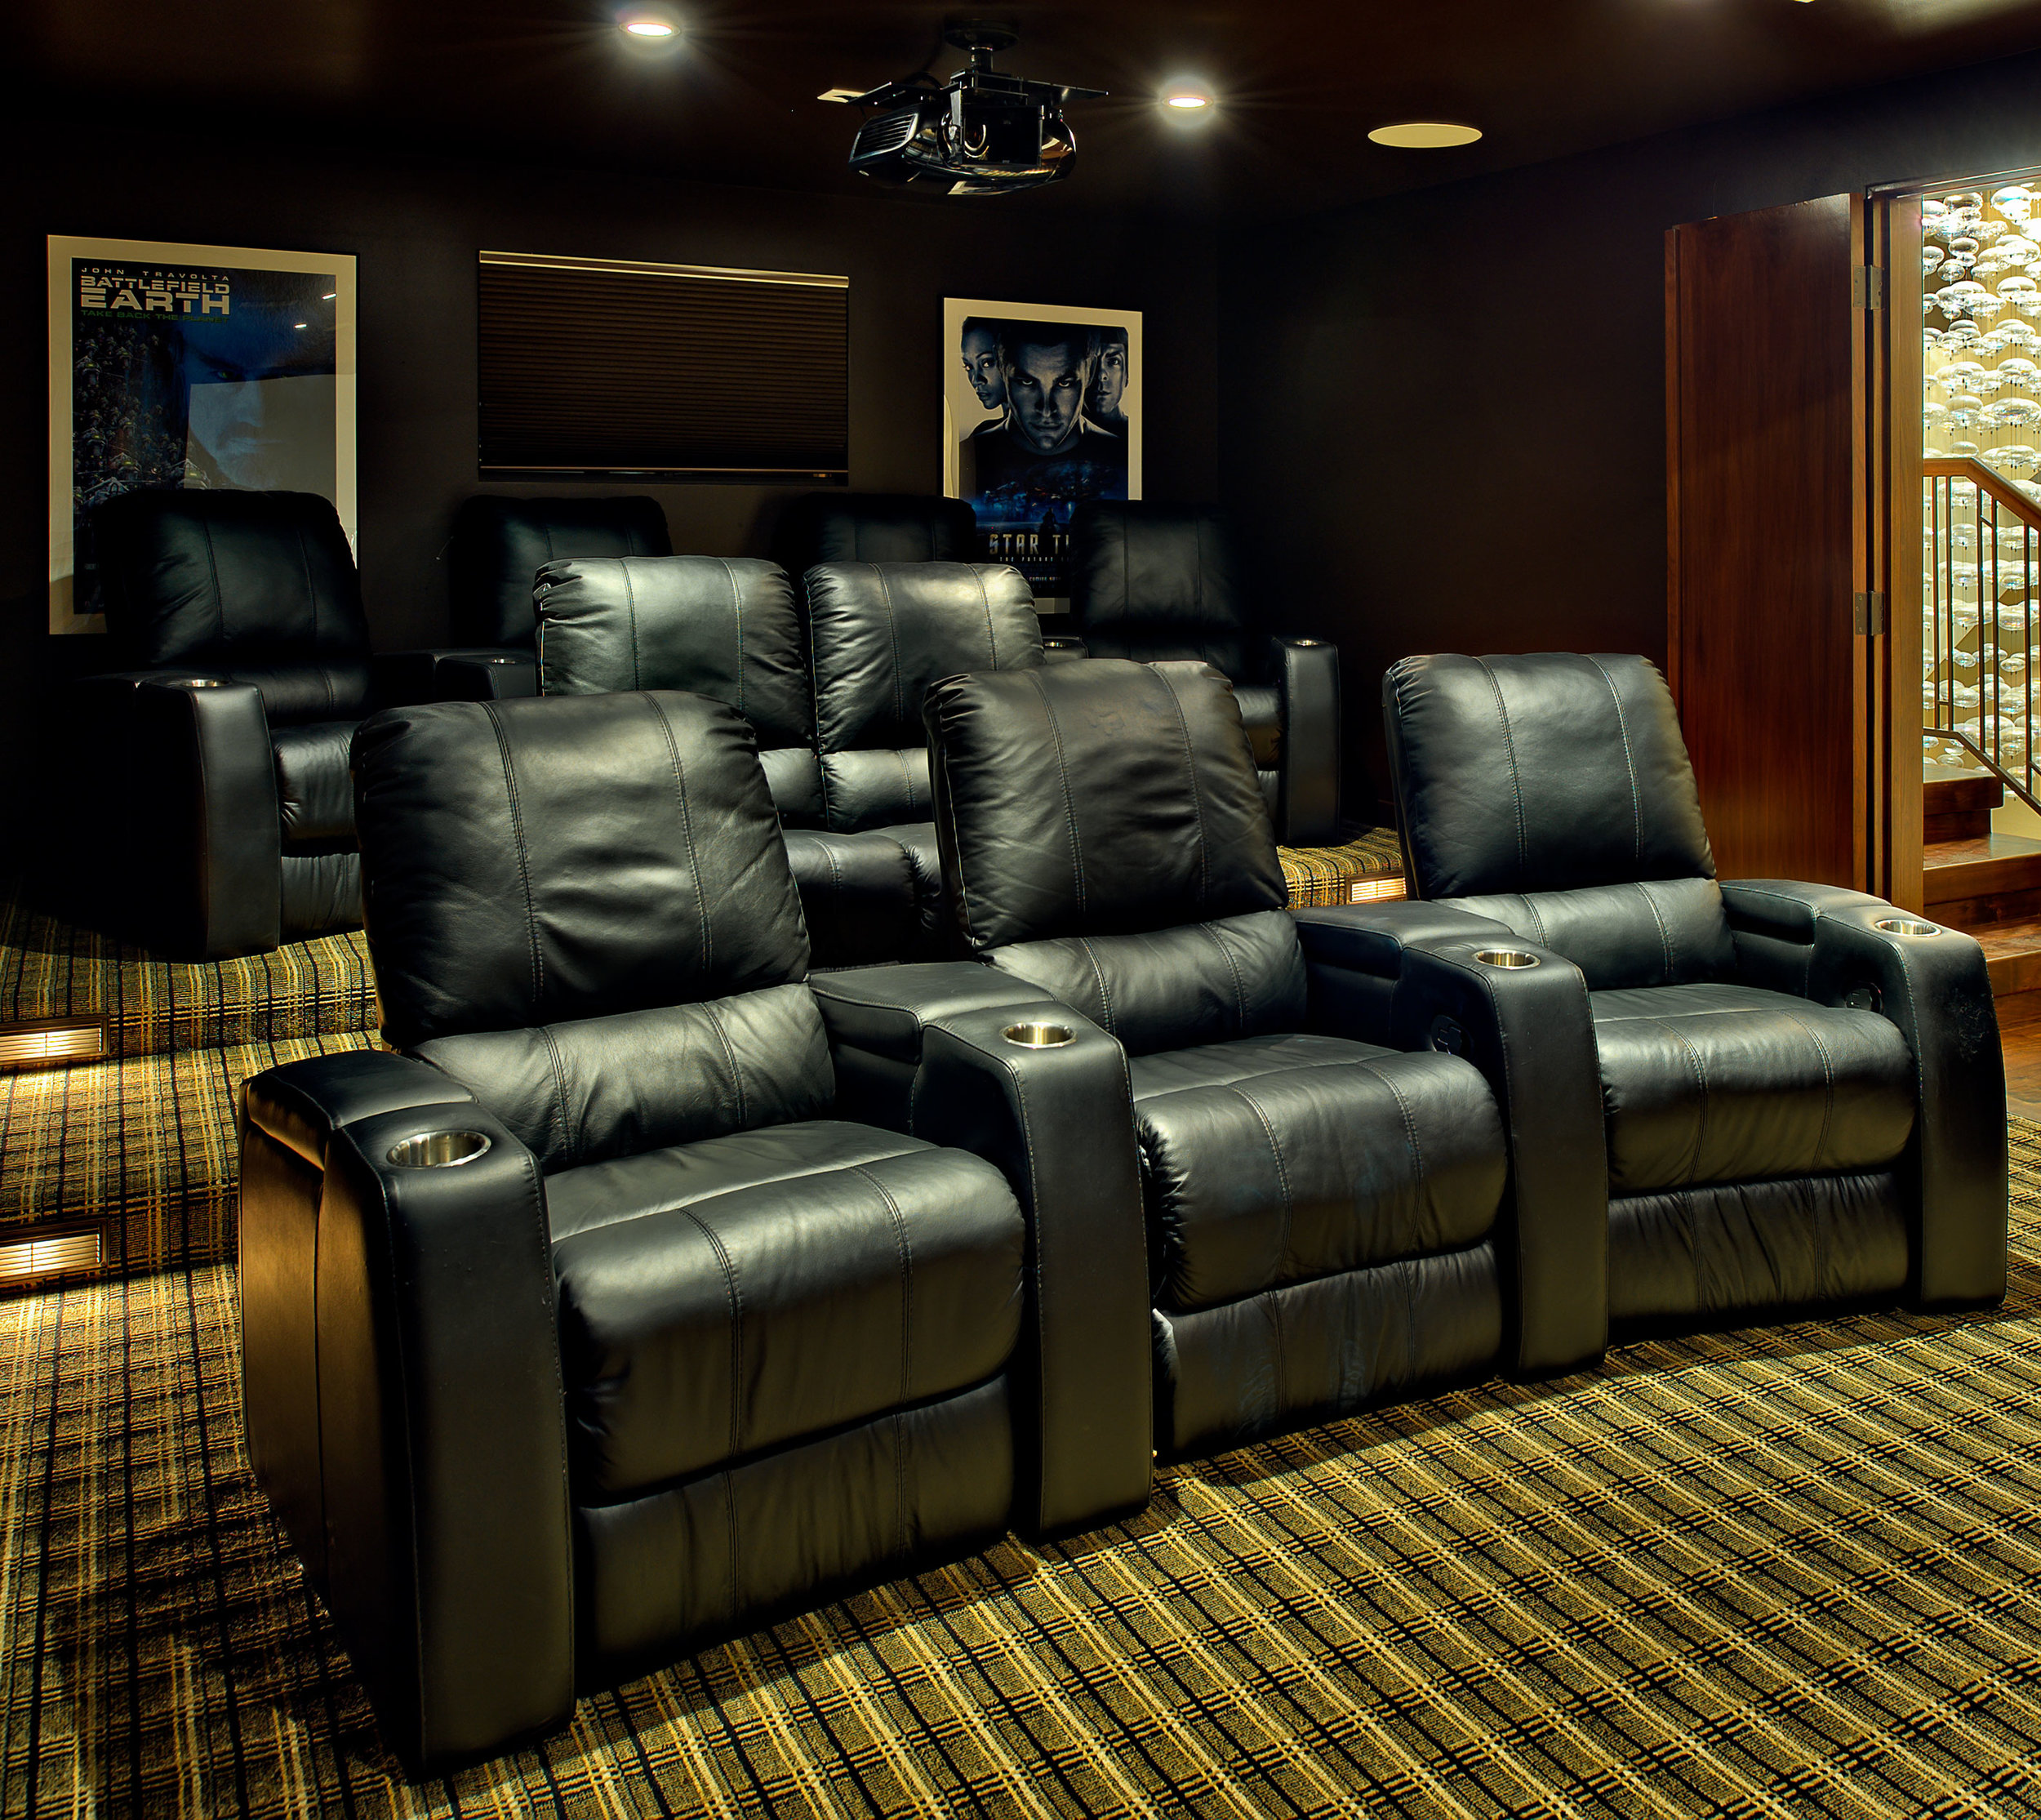 11-SiliconBay-home-theater-modern-luxury.jpg